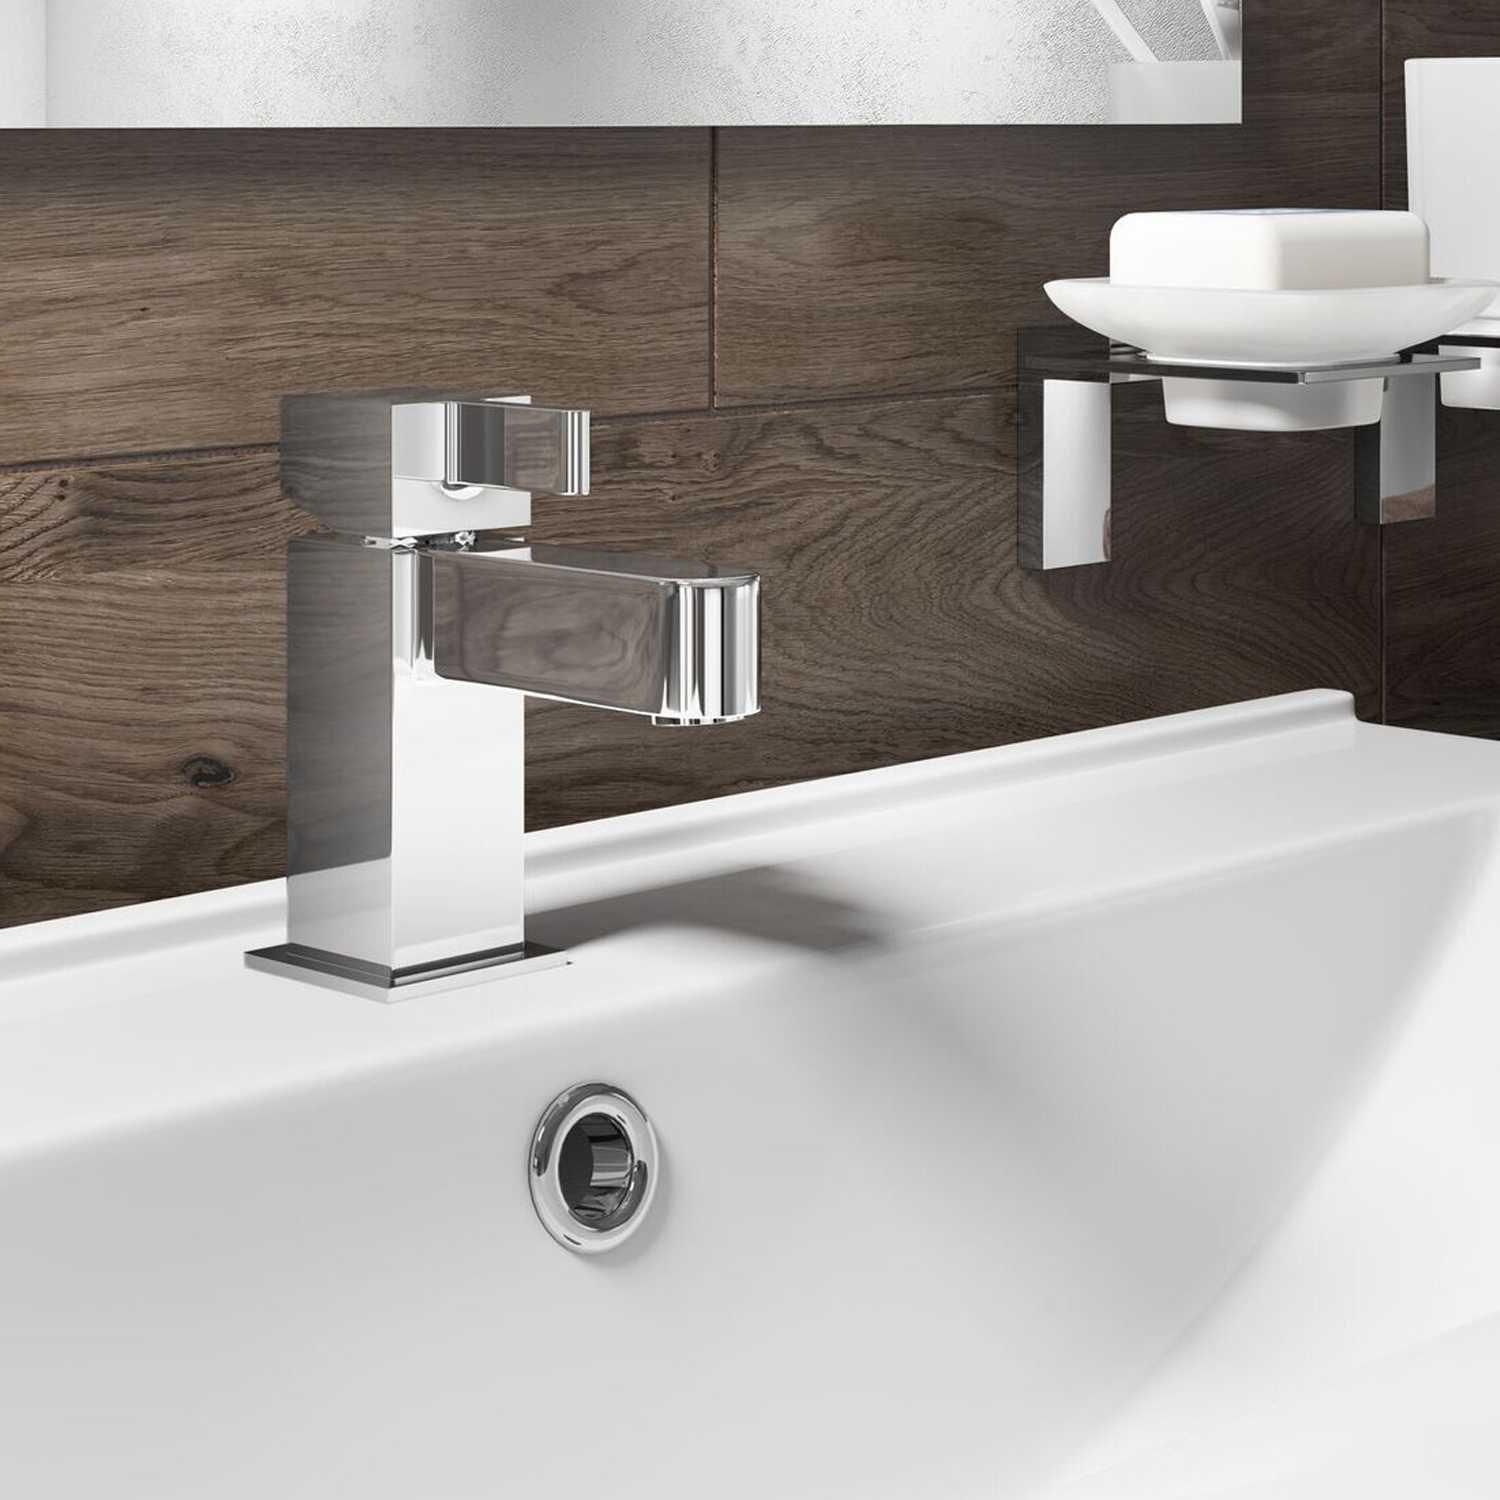 Cali Mode Mono Basin Mixer Tap - Deck Mounted - Chrome